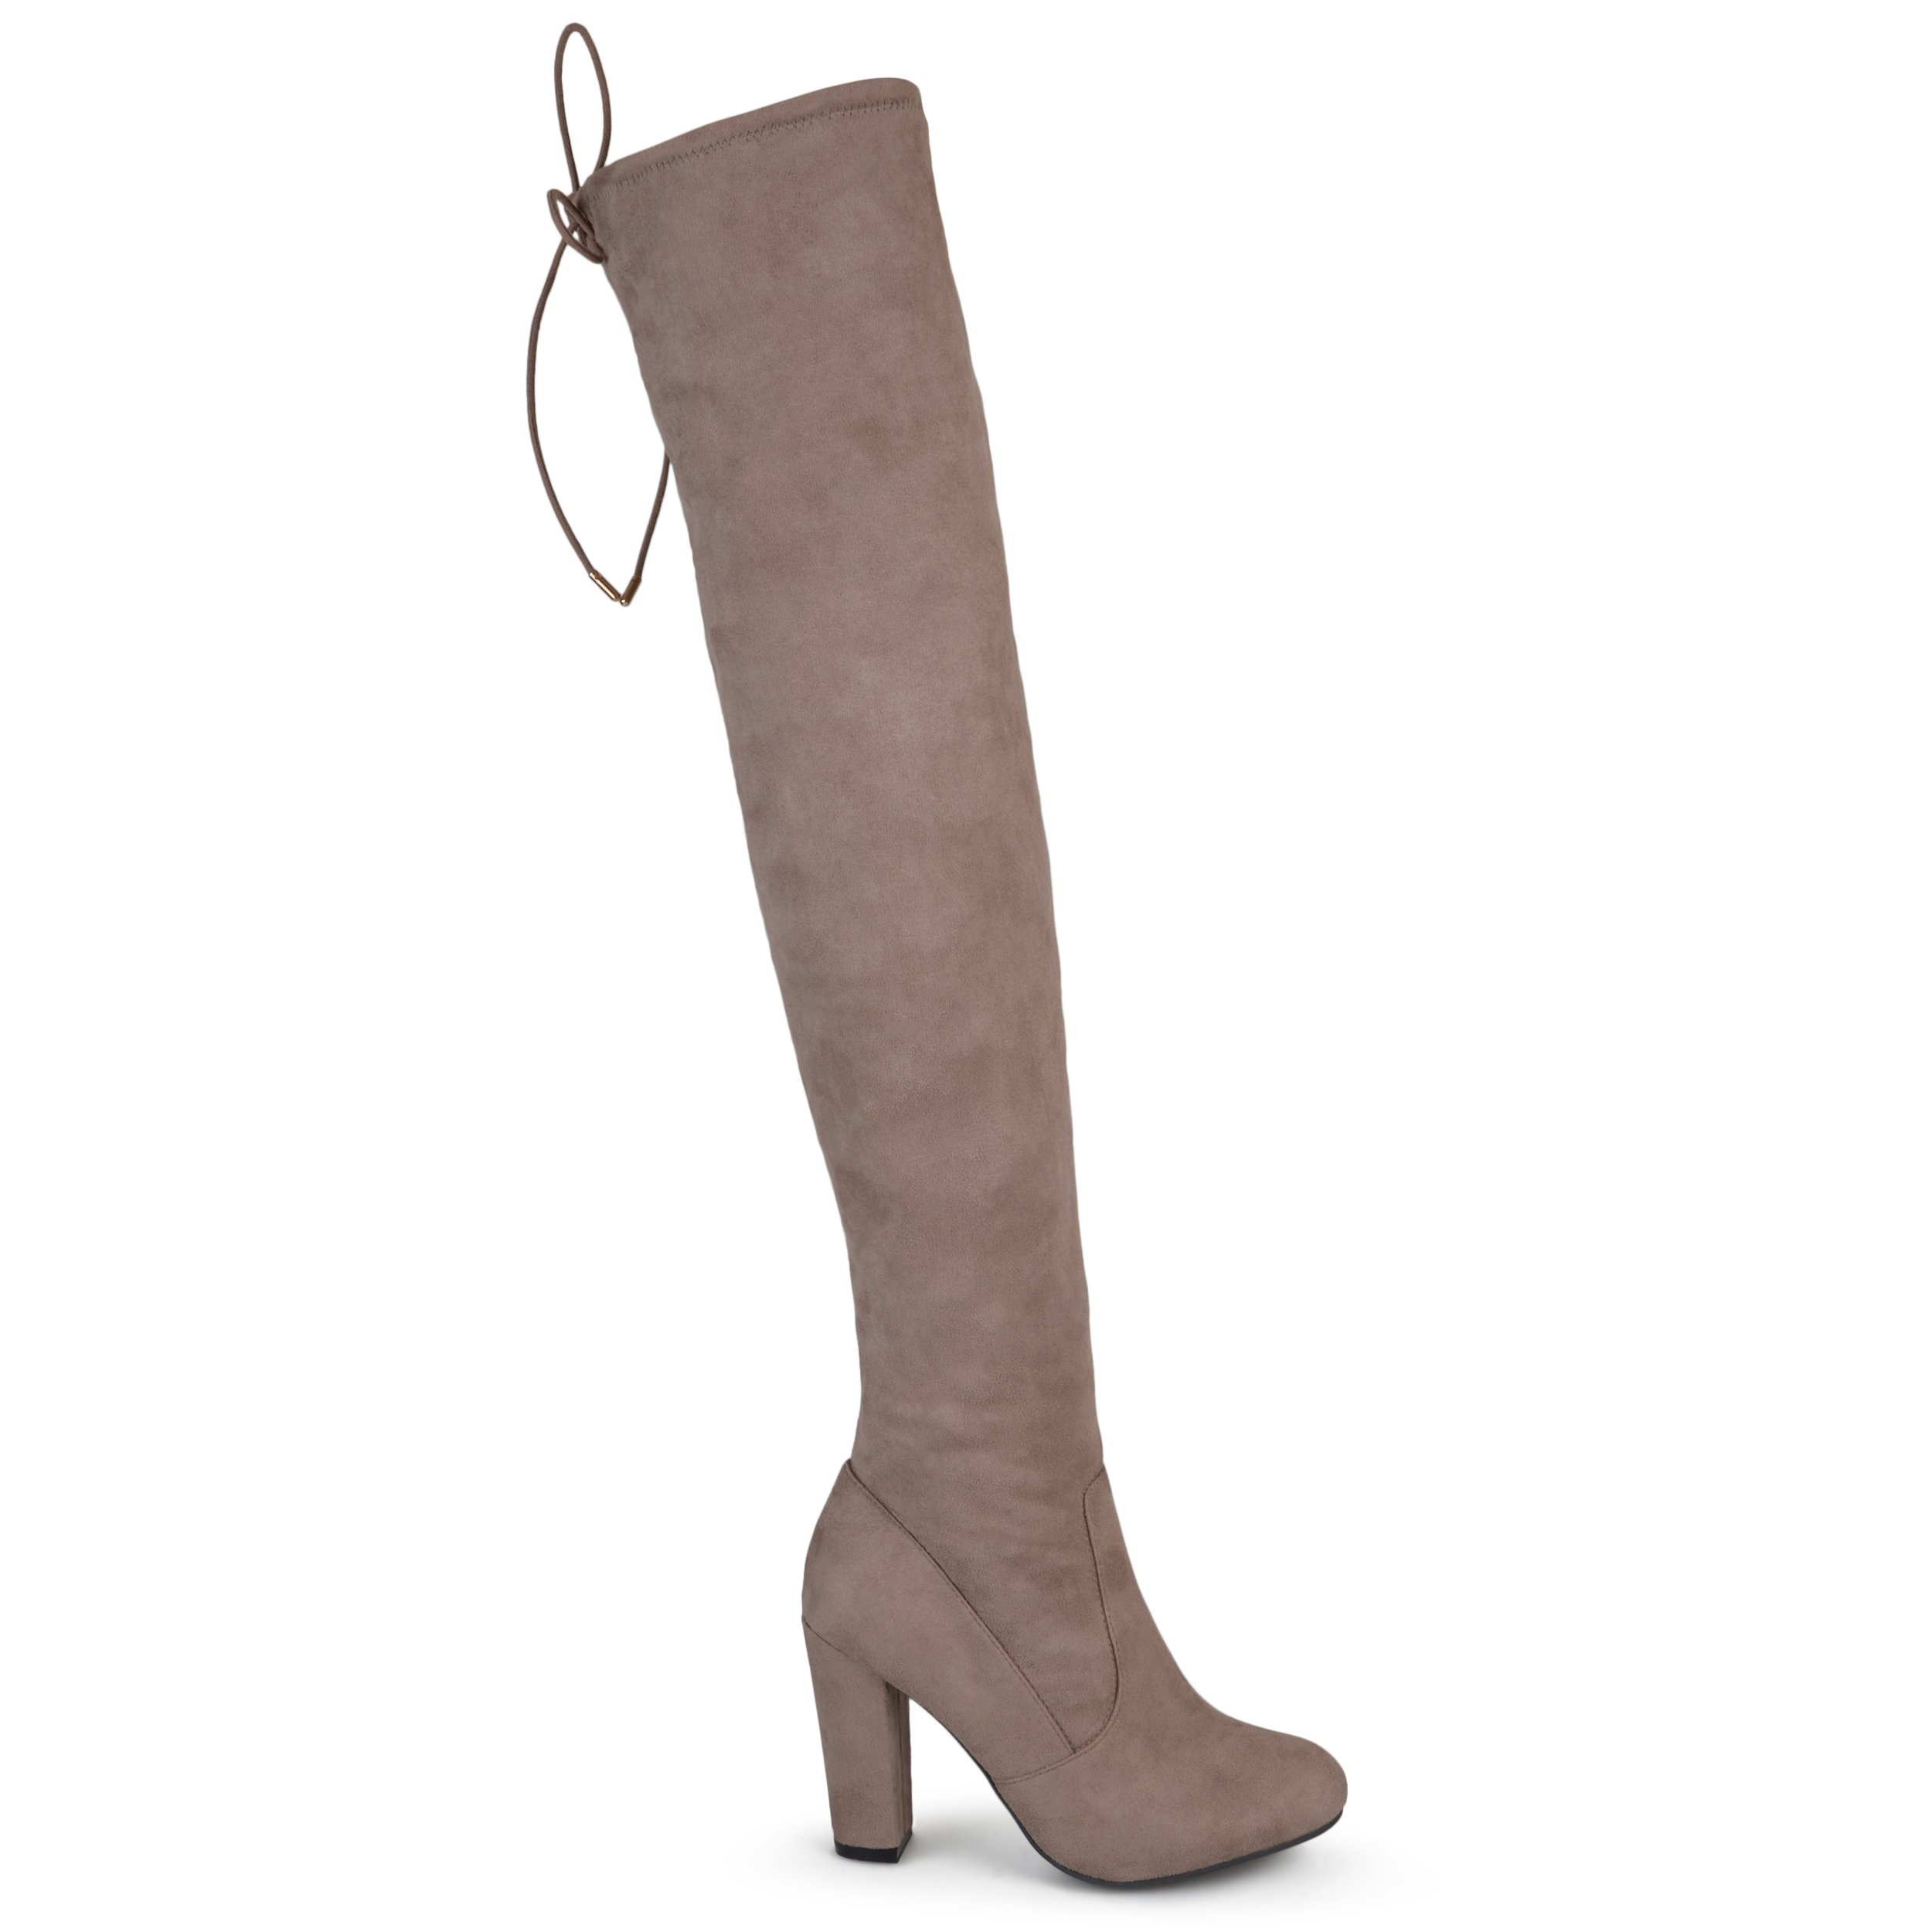 Brinley Co Women's Milan Over The Knee Boot, Taupe, 8.5 Wide/Wide Shaft US